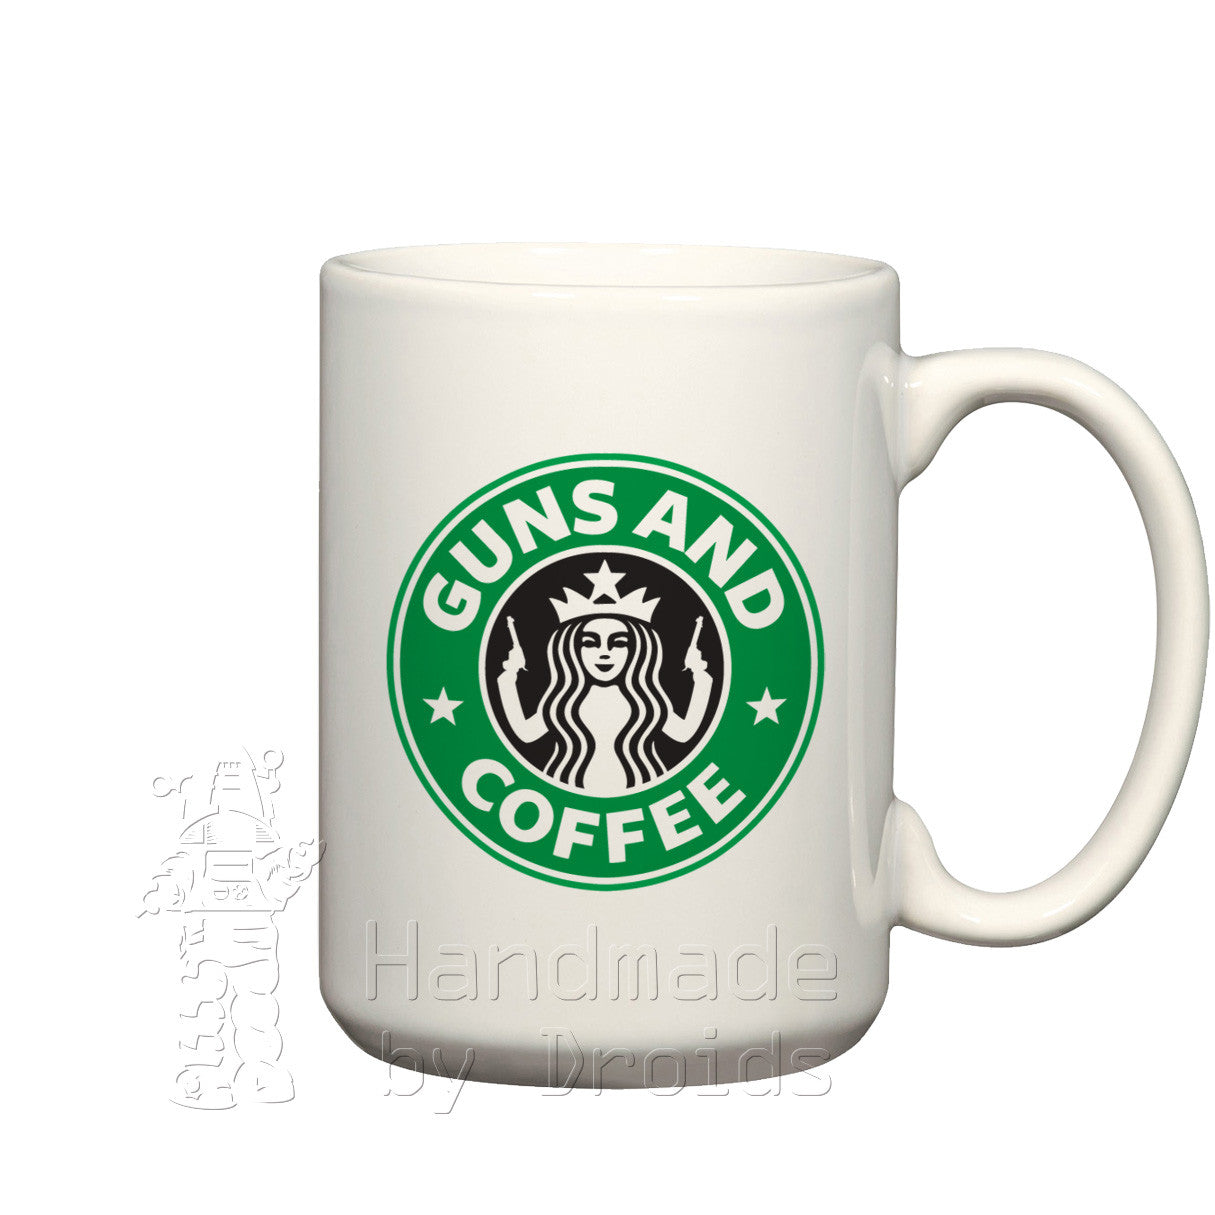 Guns and Coffee Starbucks parody Mug